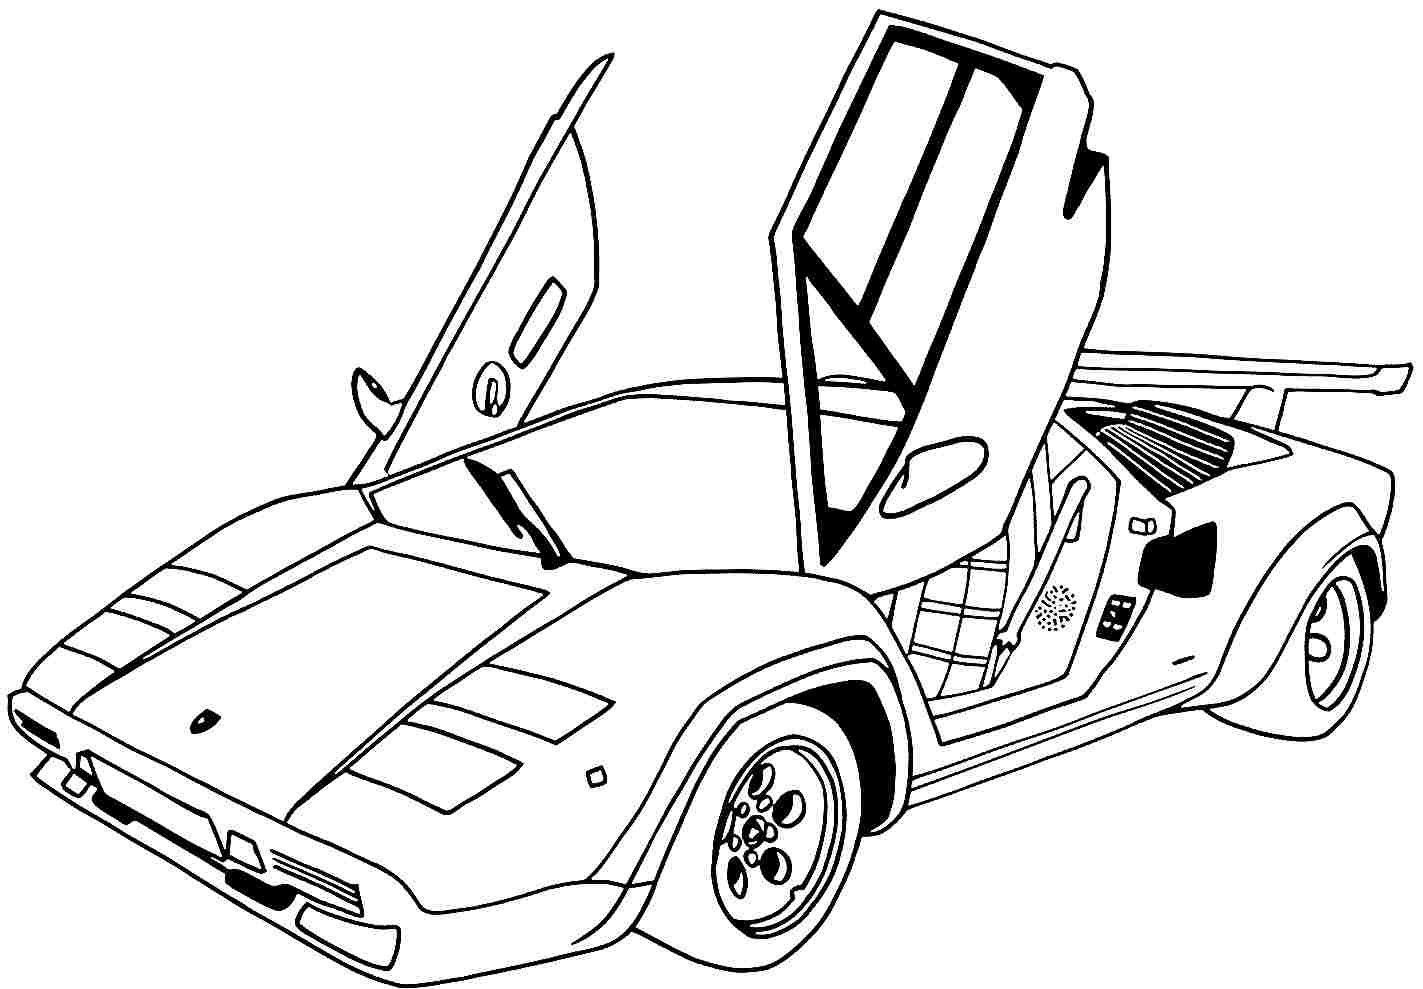 printabl sportcar coloring pages - photo#8